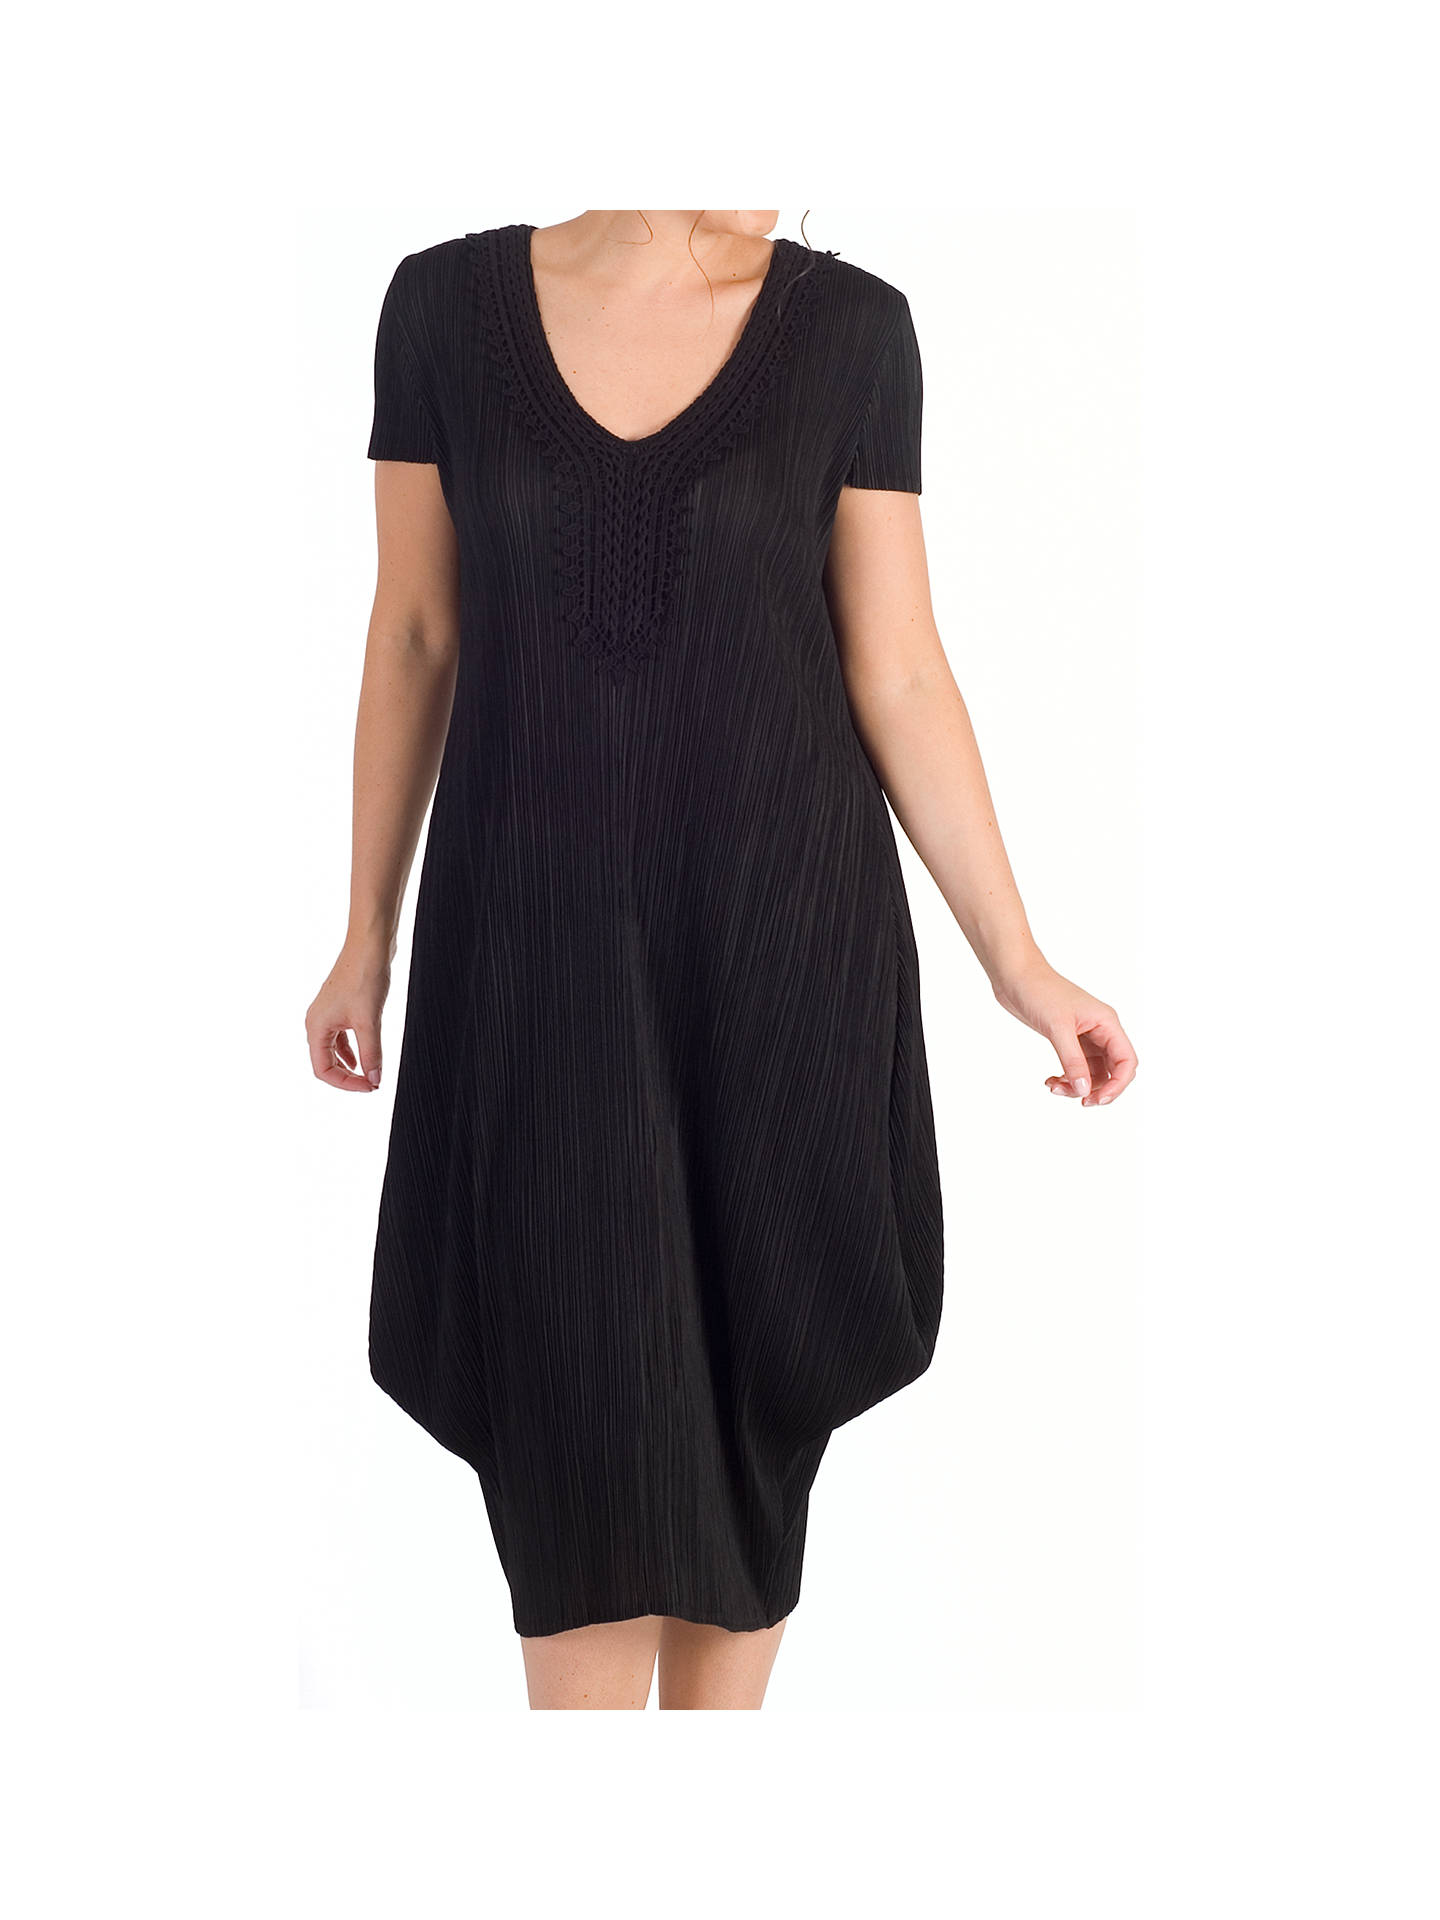 Buy Chesca Crushed Pleat Draped Dress, Black, 12-14 Online at johnlewis.com